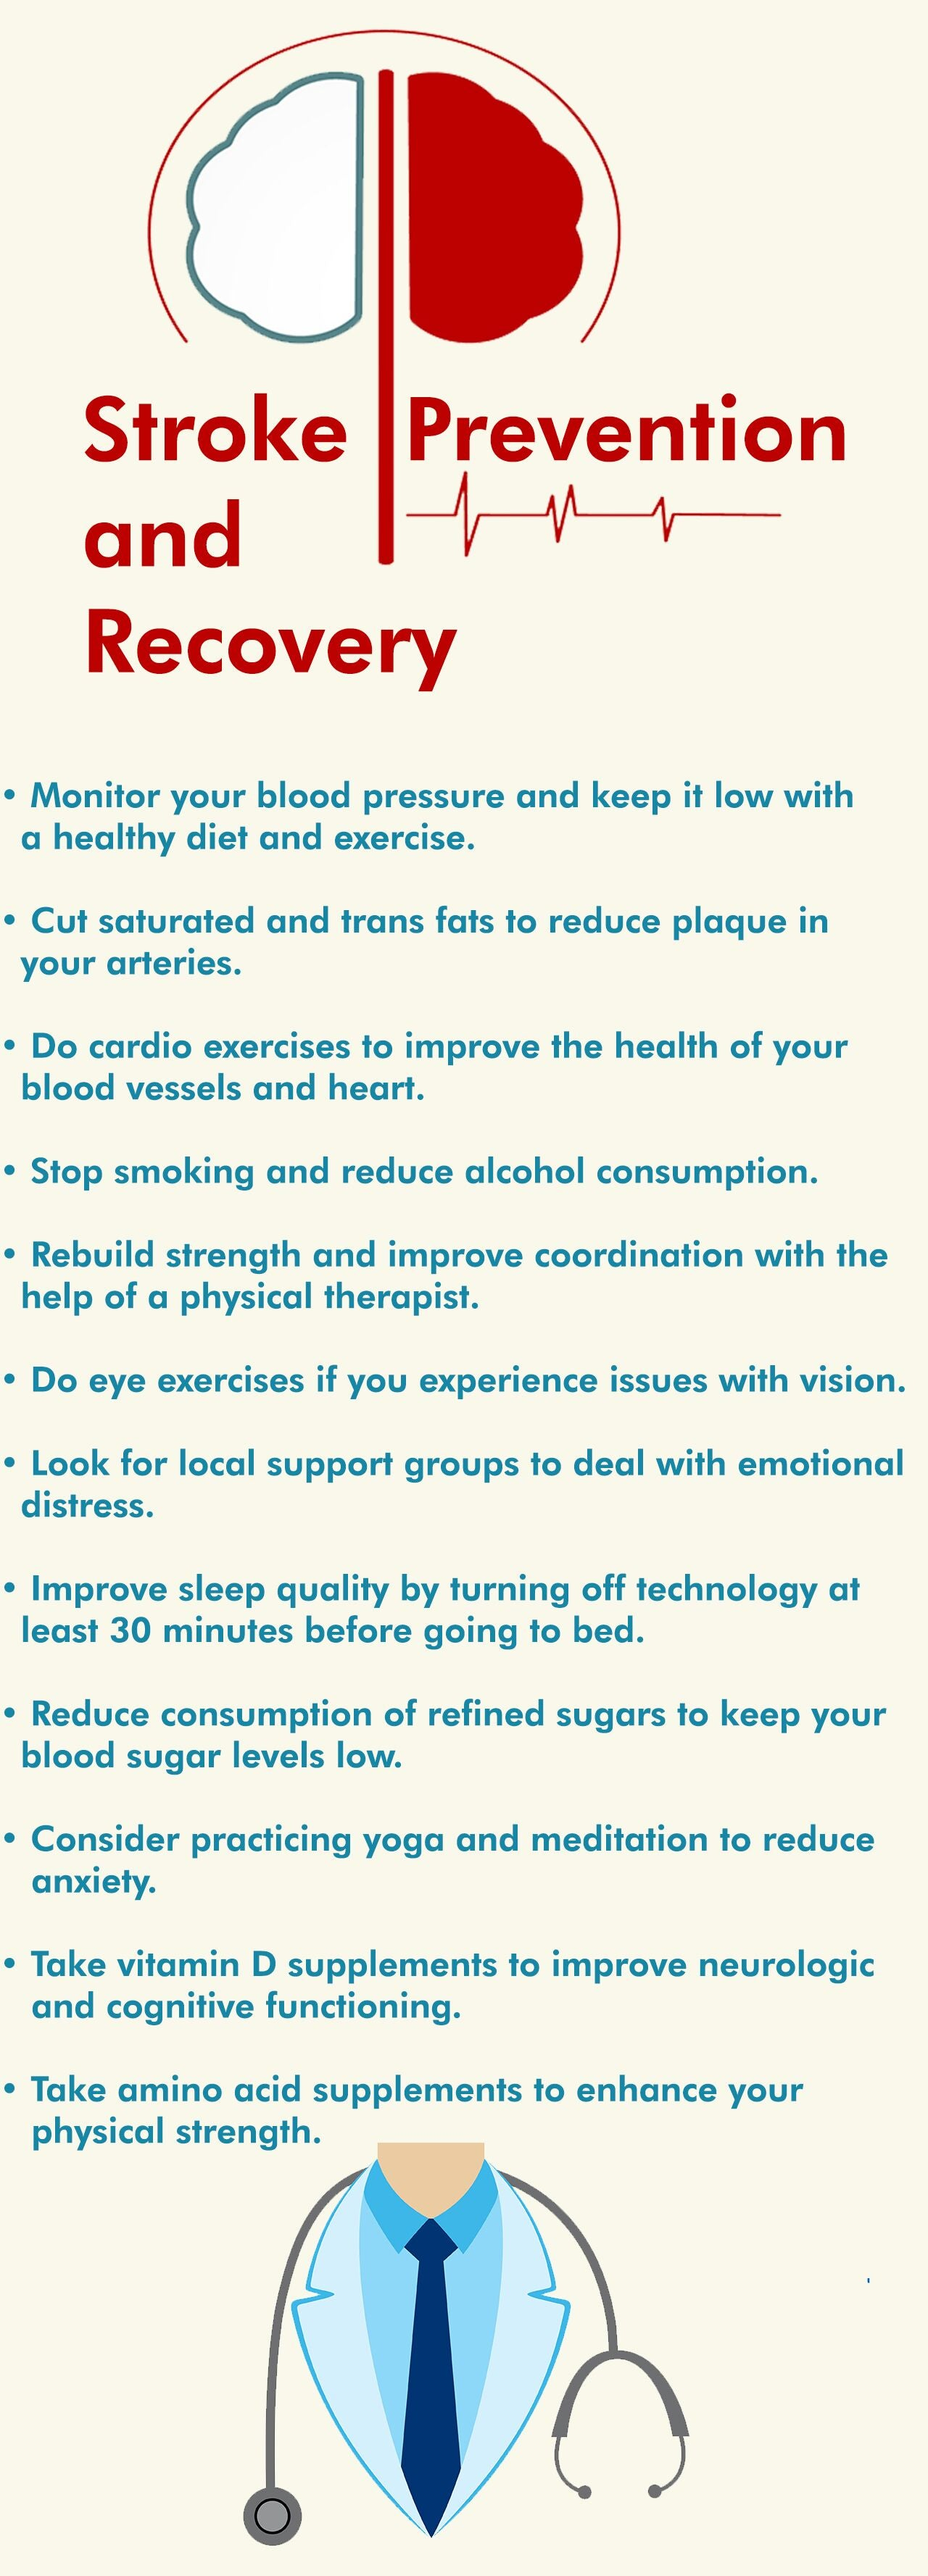 Stroke prevention and recovery tips